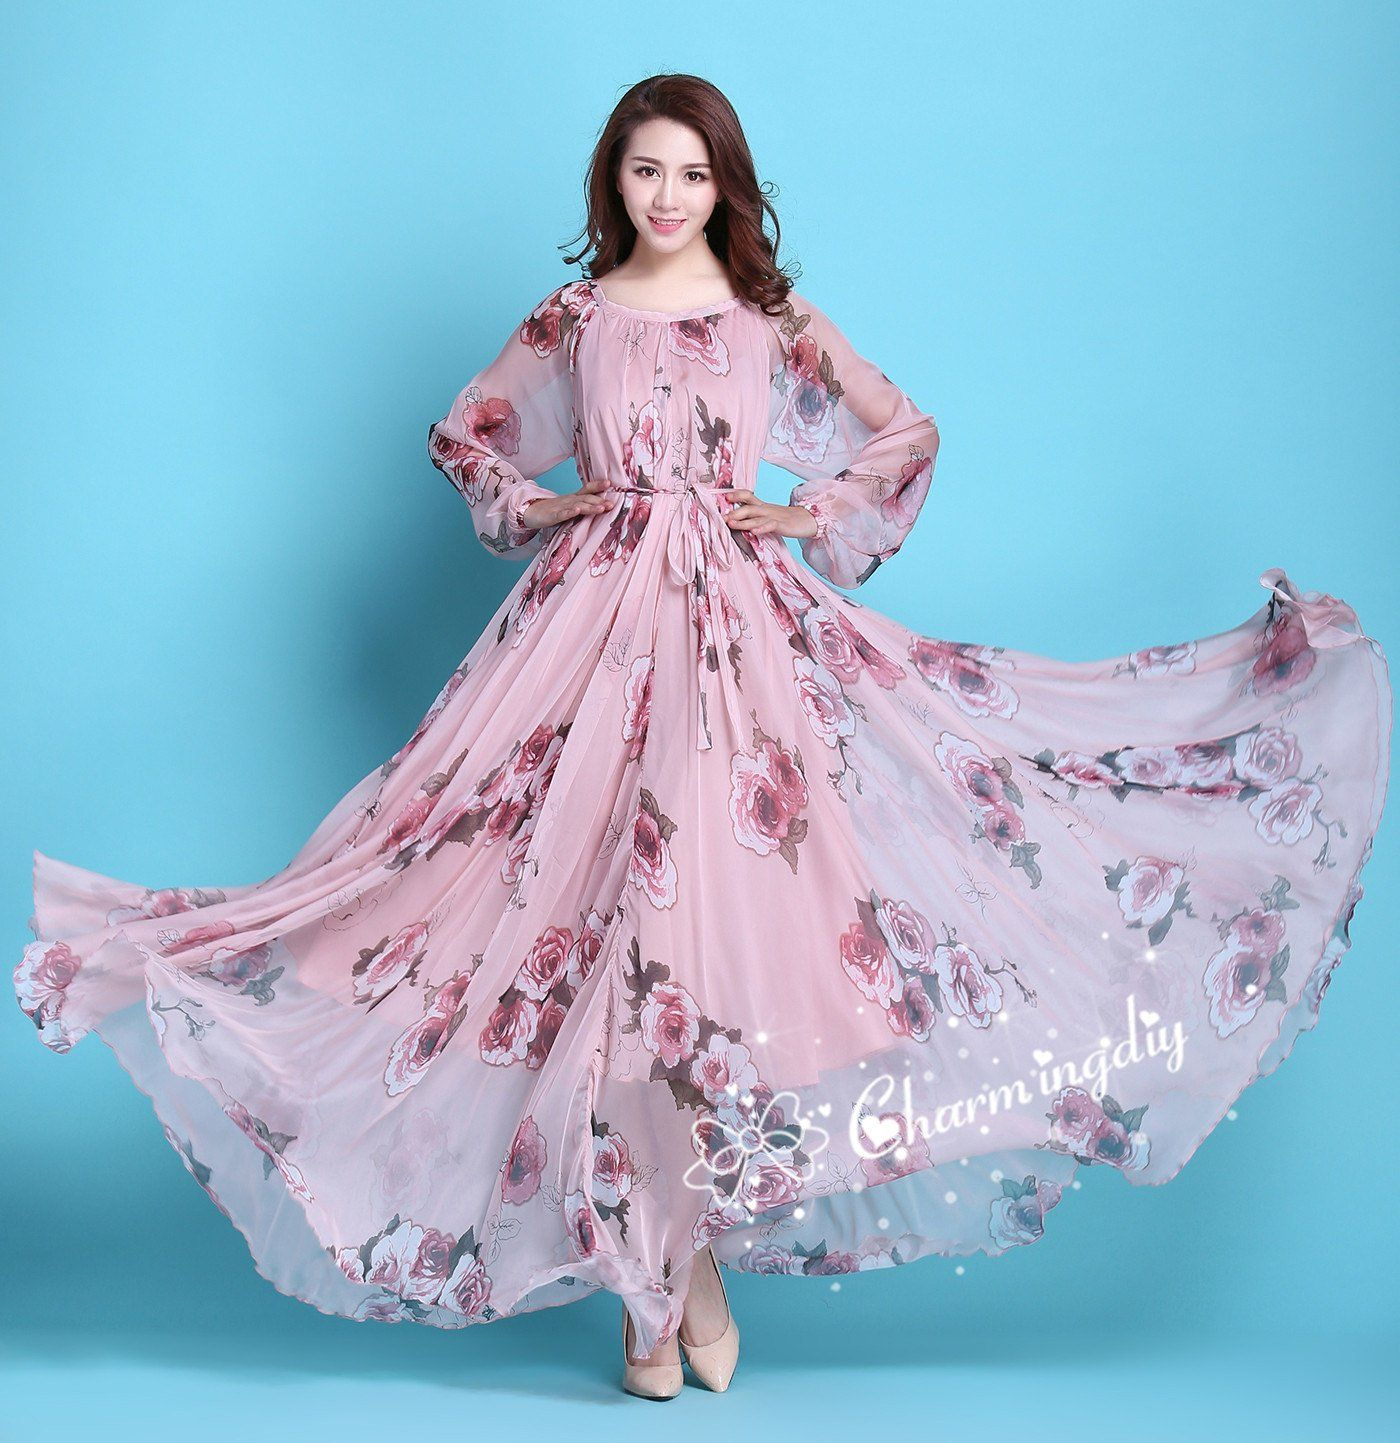 pink floral dress with sleeves